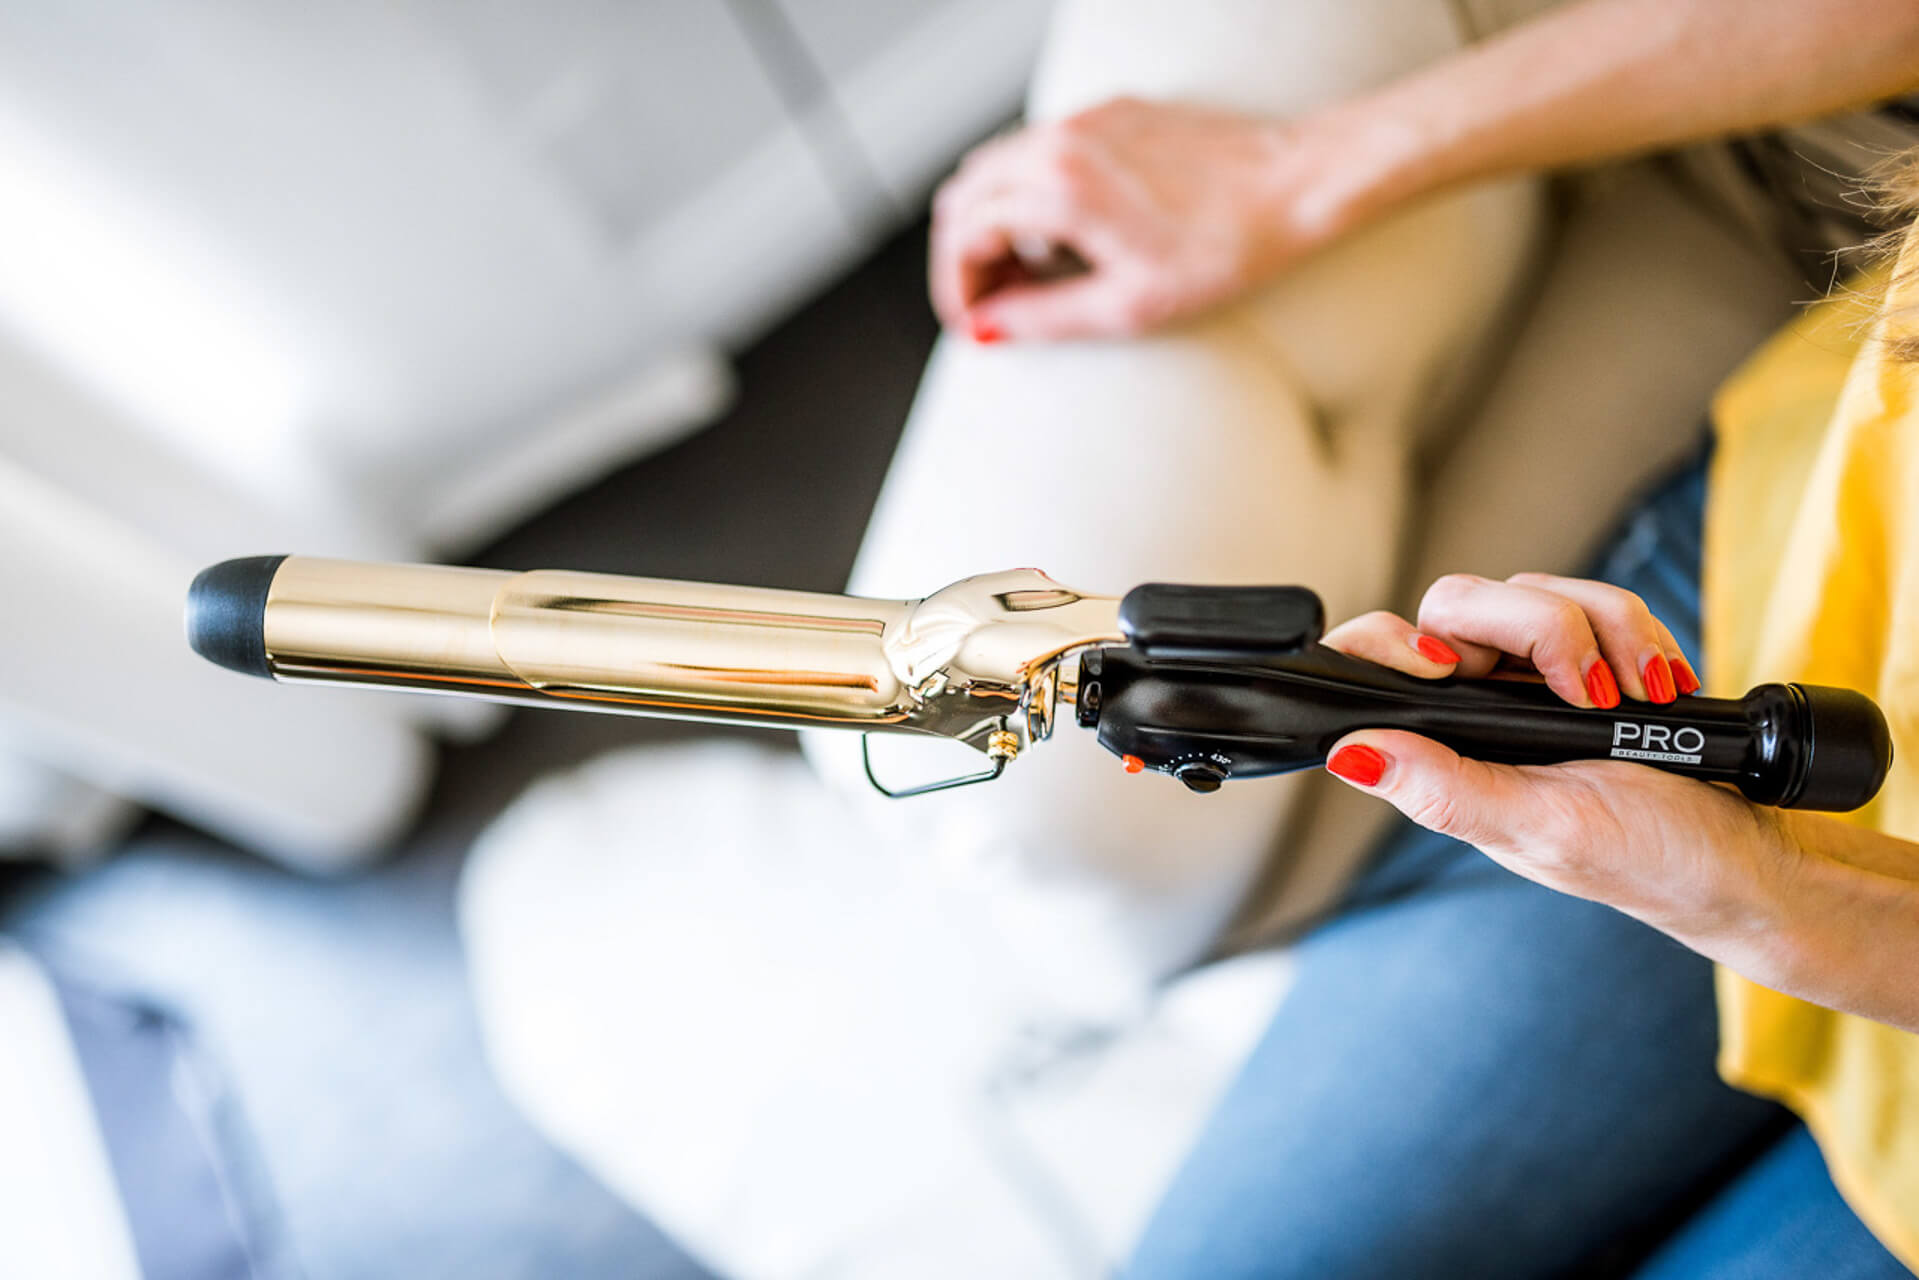 love this pro tools XL curling iron